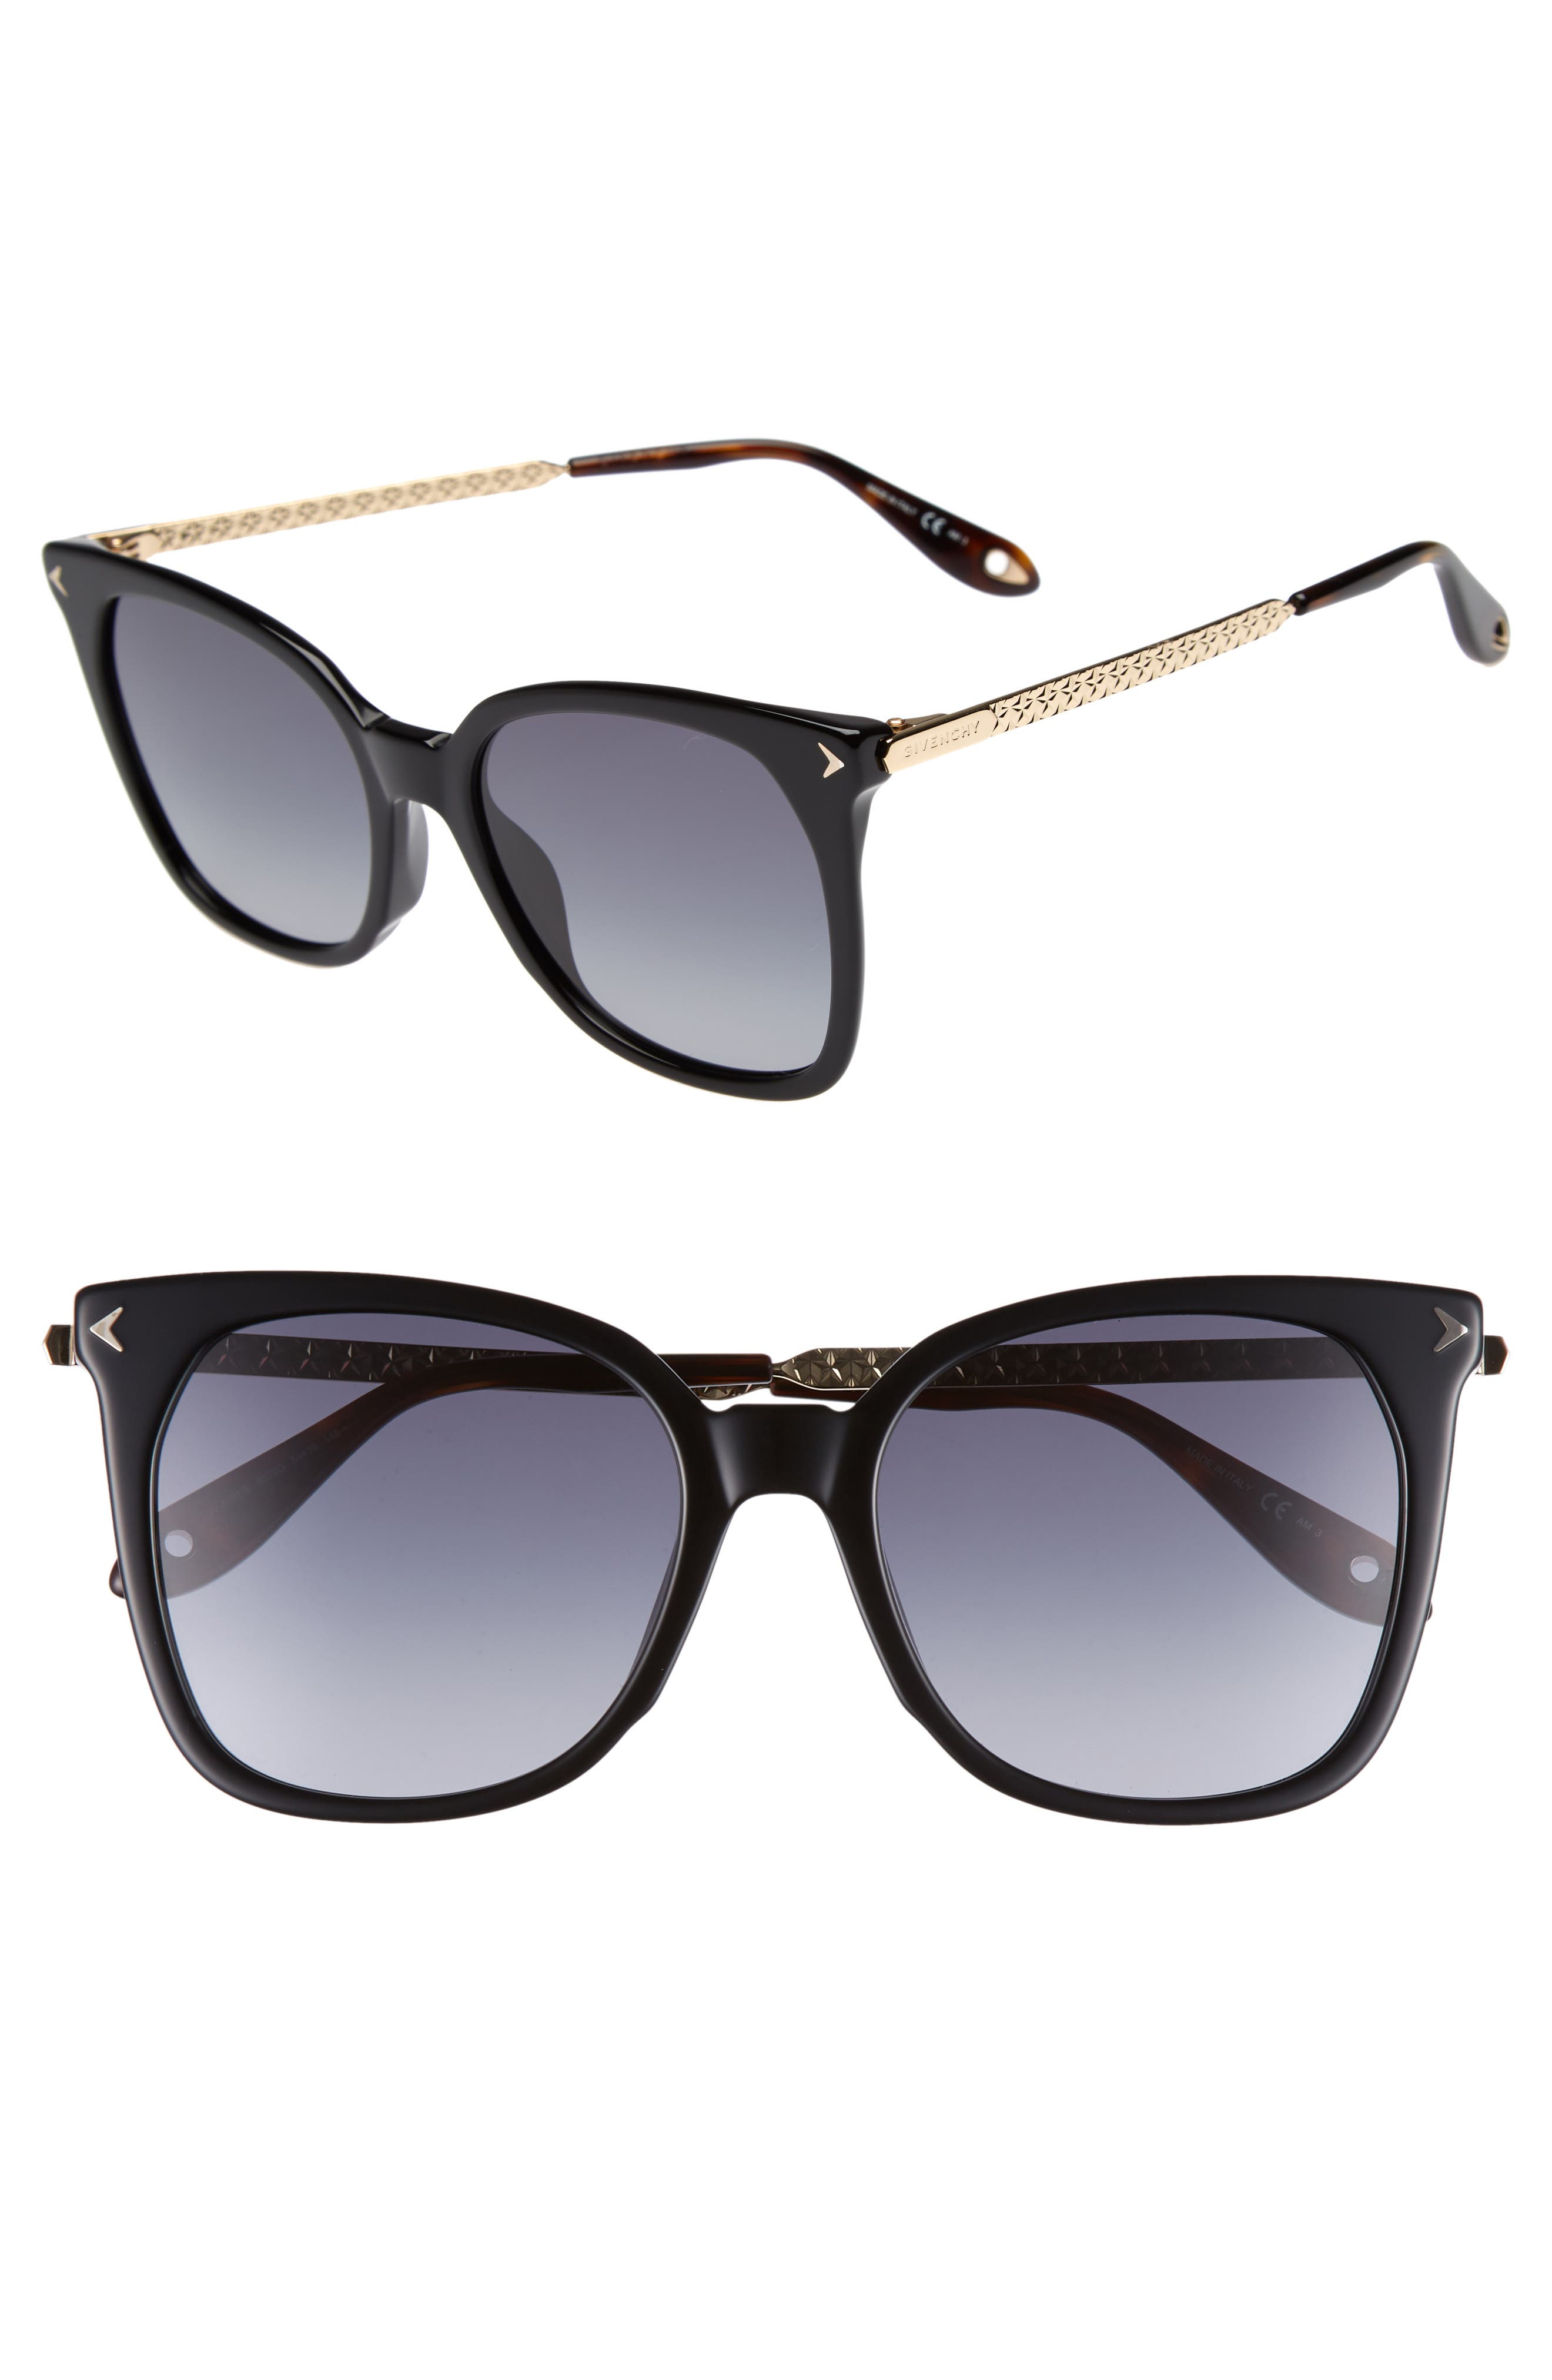 54mm Square Sunglasses,                         Main,                         color, BLACK